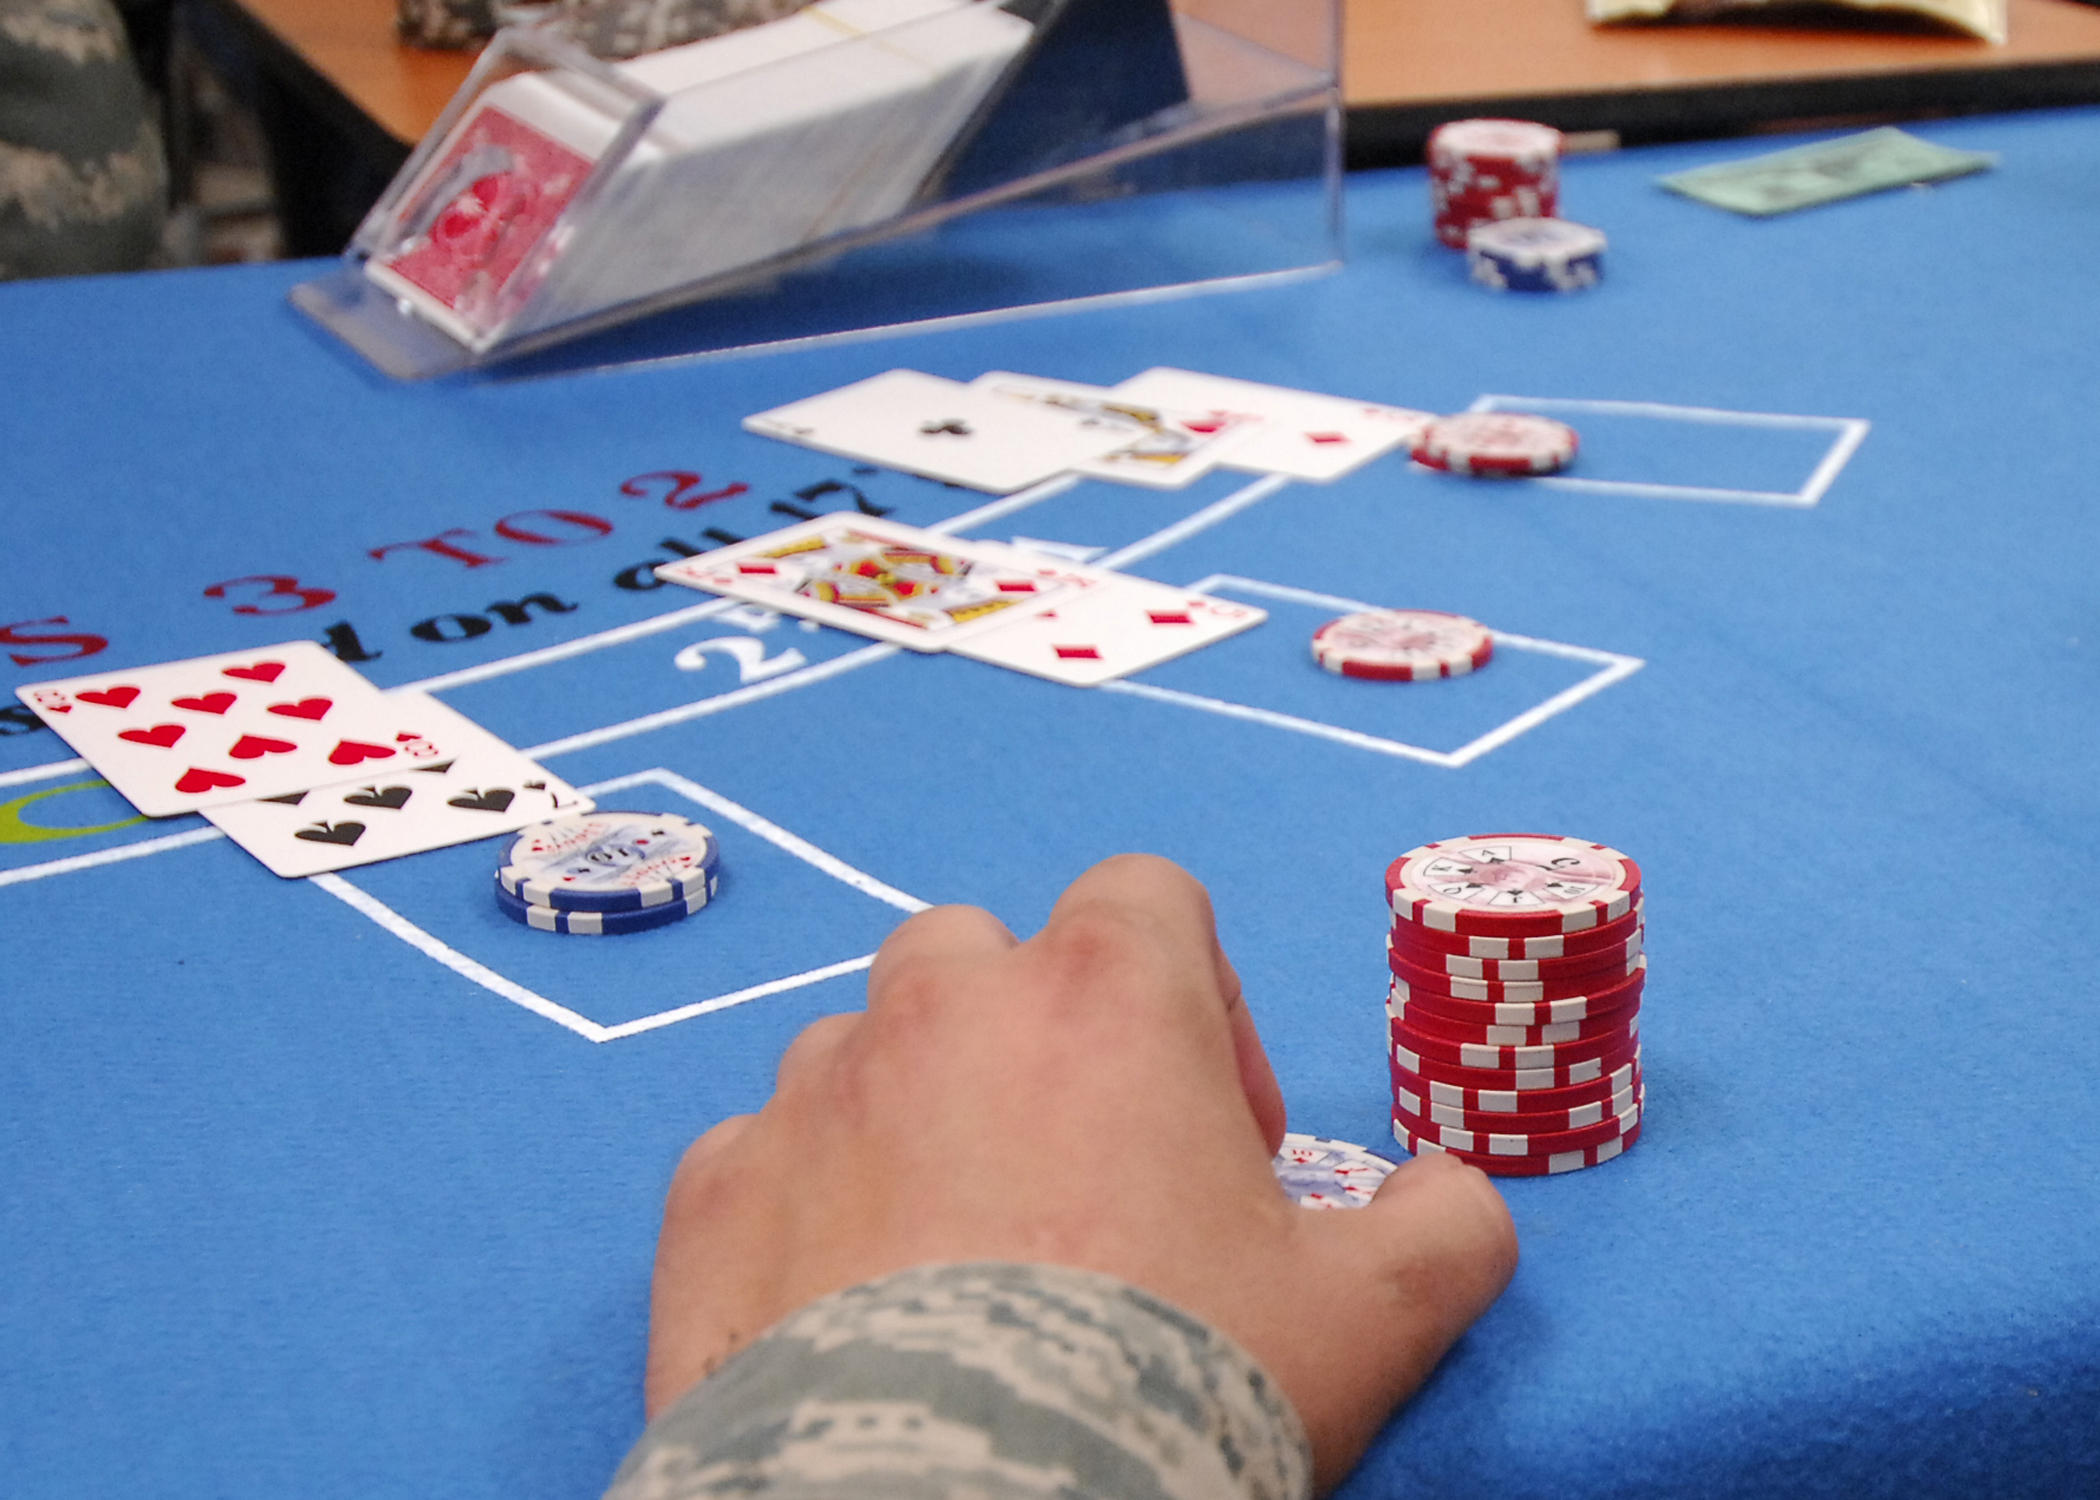 Full Casino Operations Begin In Hot Springs And West Memphis